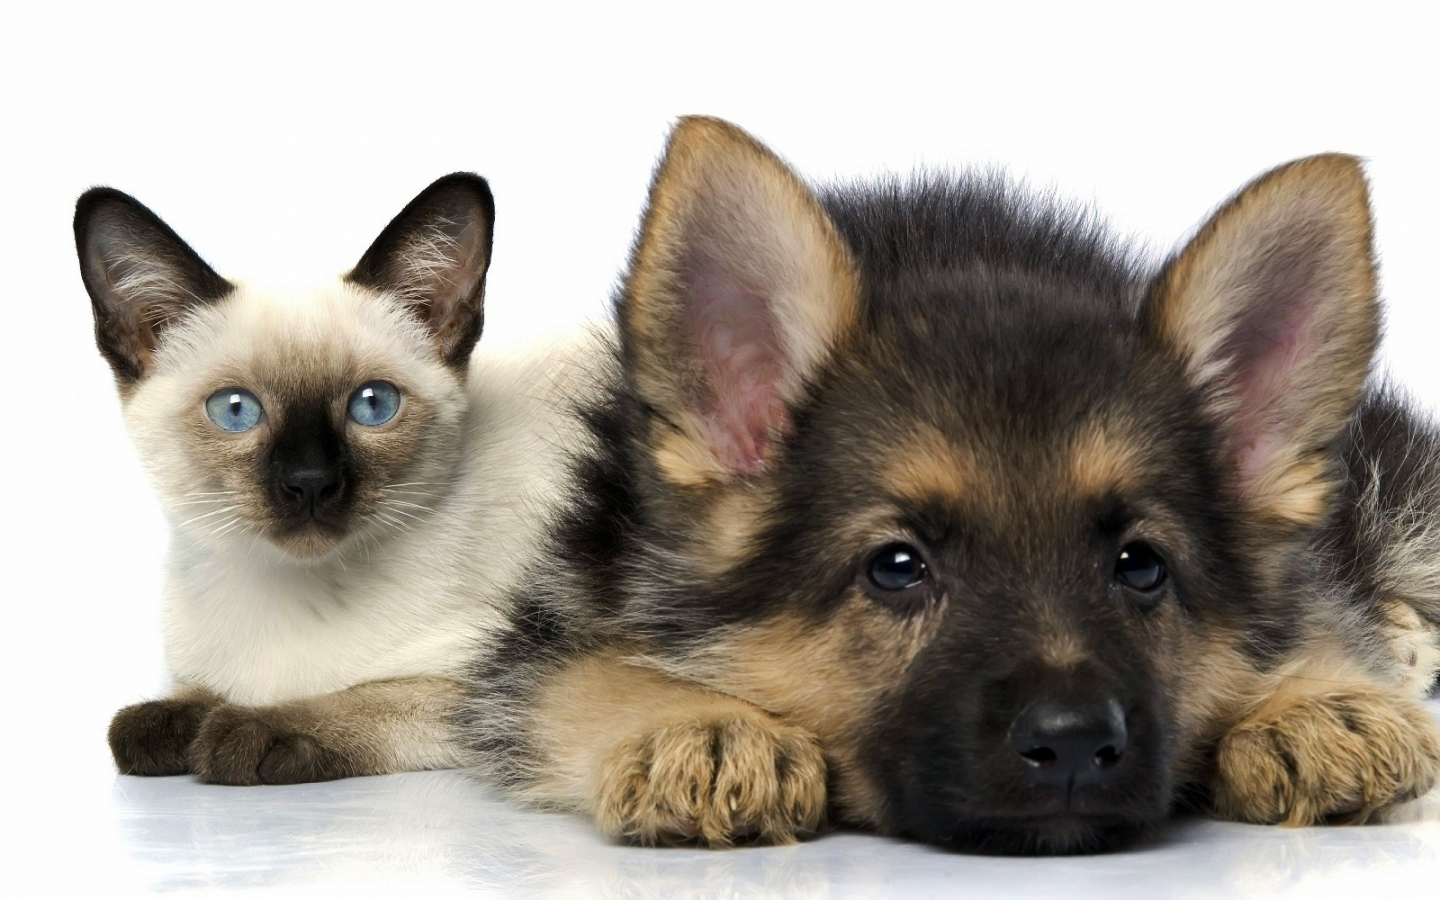 25864 download wallpaper Animals, Cats, Dogs screensavers and pictures for free